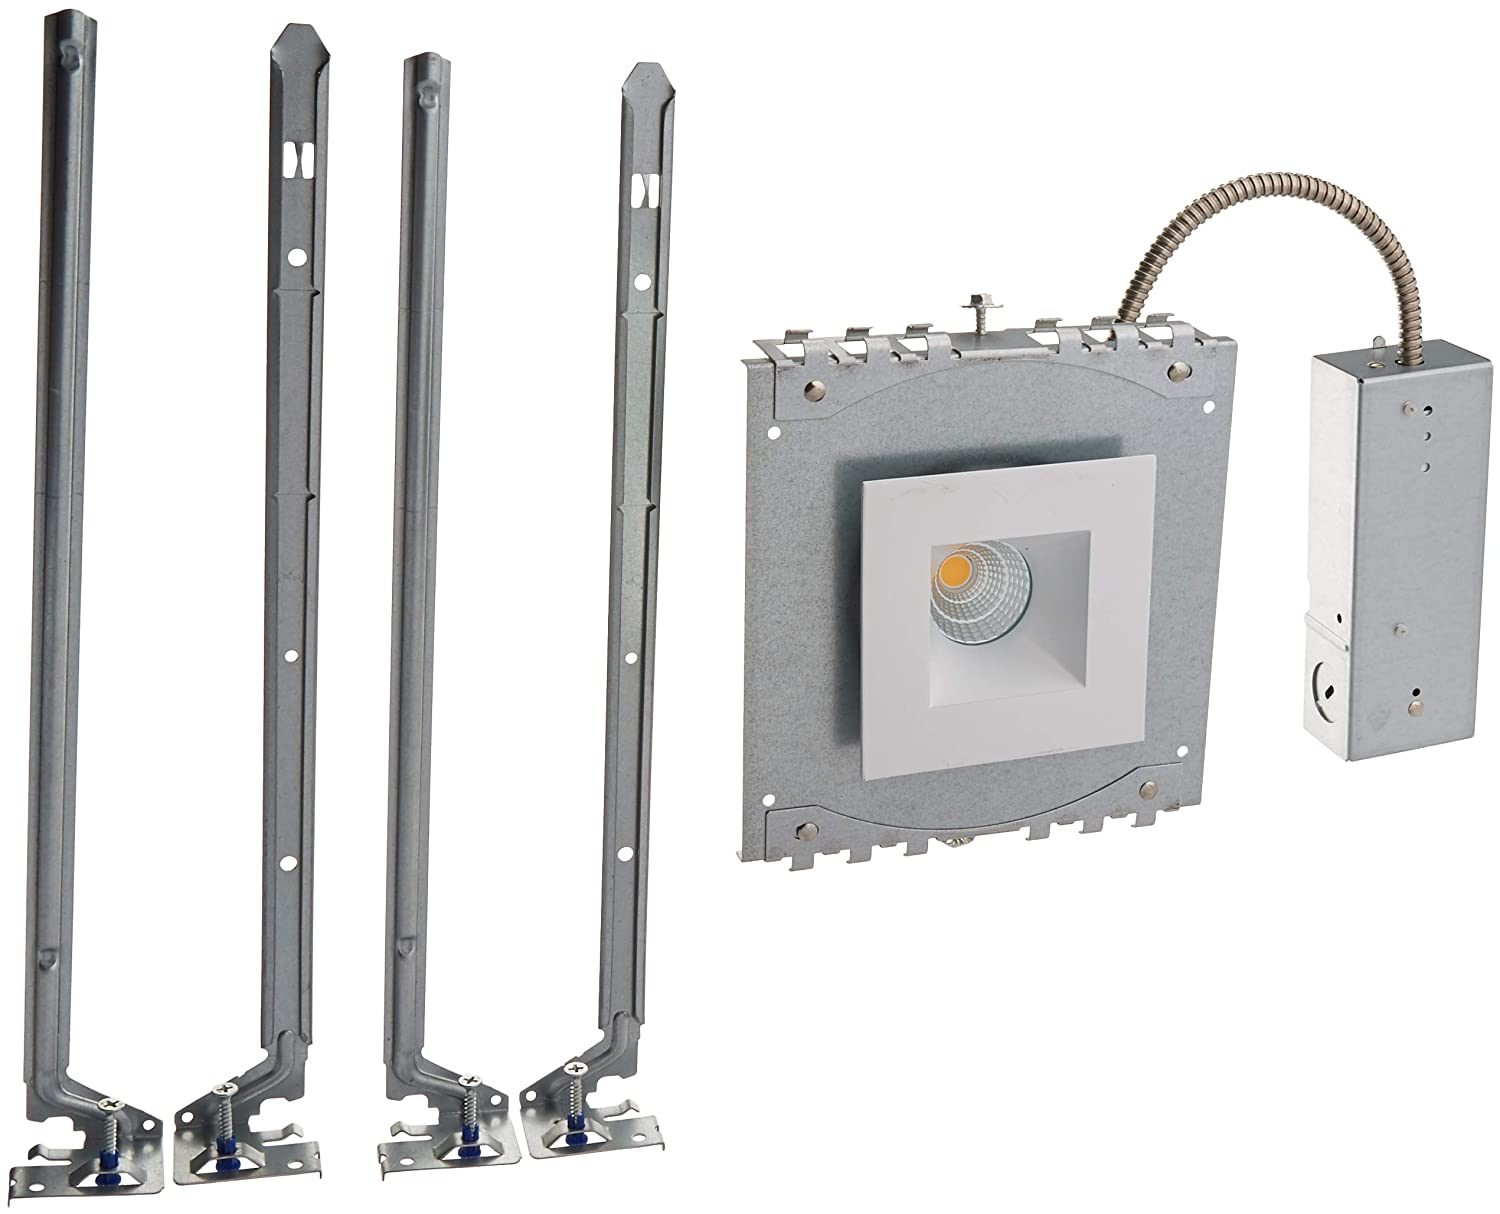 WAC Lighting R2BSD-F927-HZWT Oculux 2 LED Square Flood 2700K Trim with Light Engine and New Construction or Remodel Housing 50 Beam Haze//White